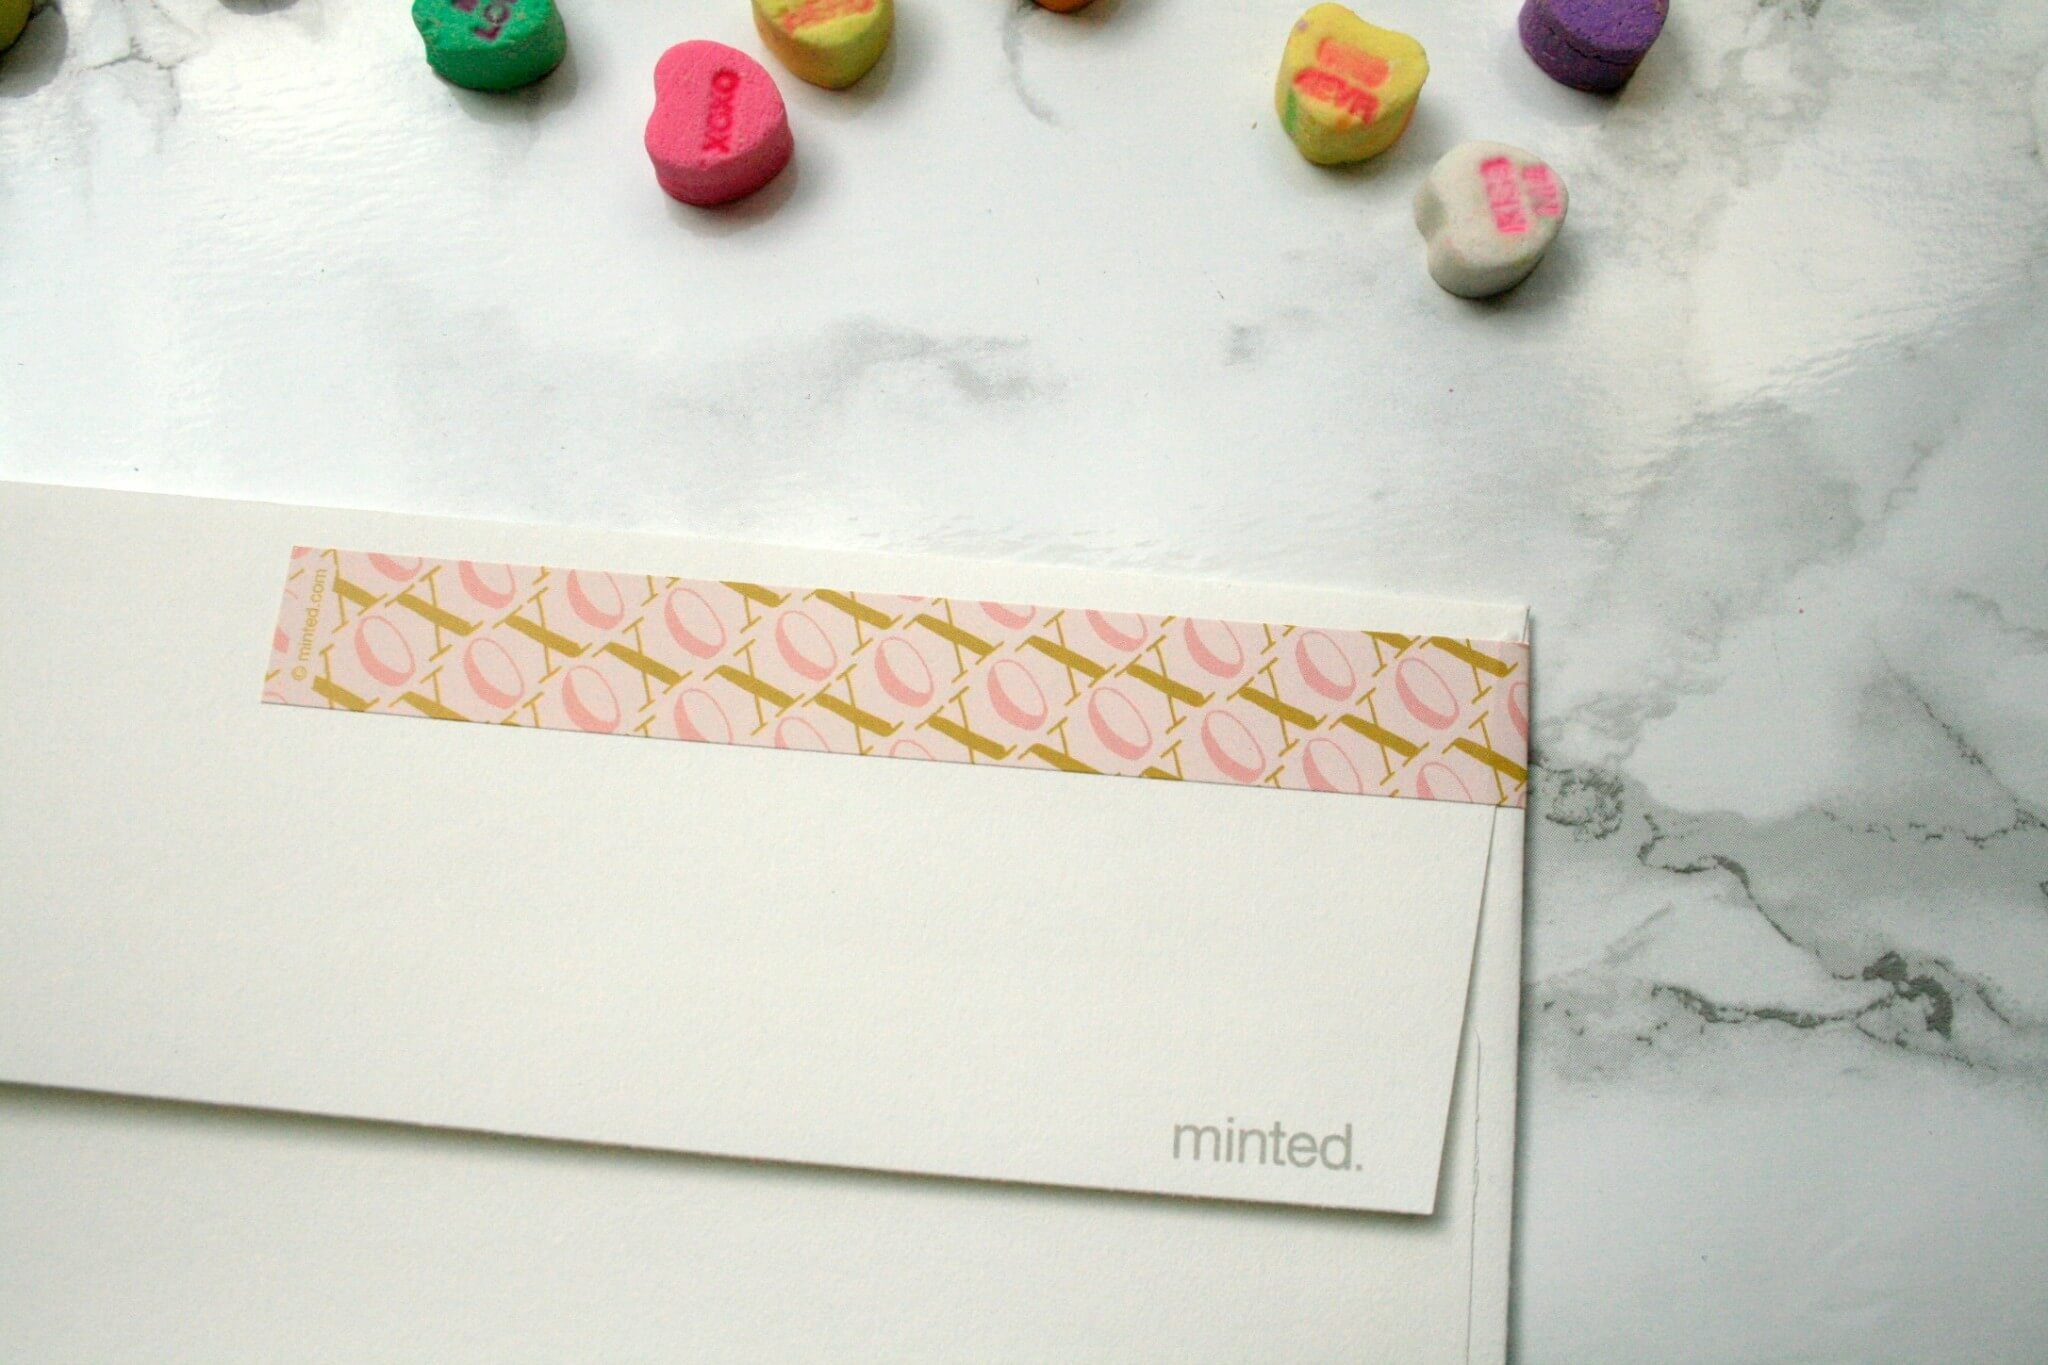 Minted Address Label